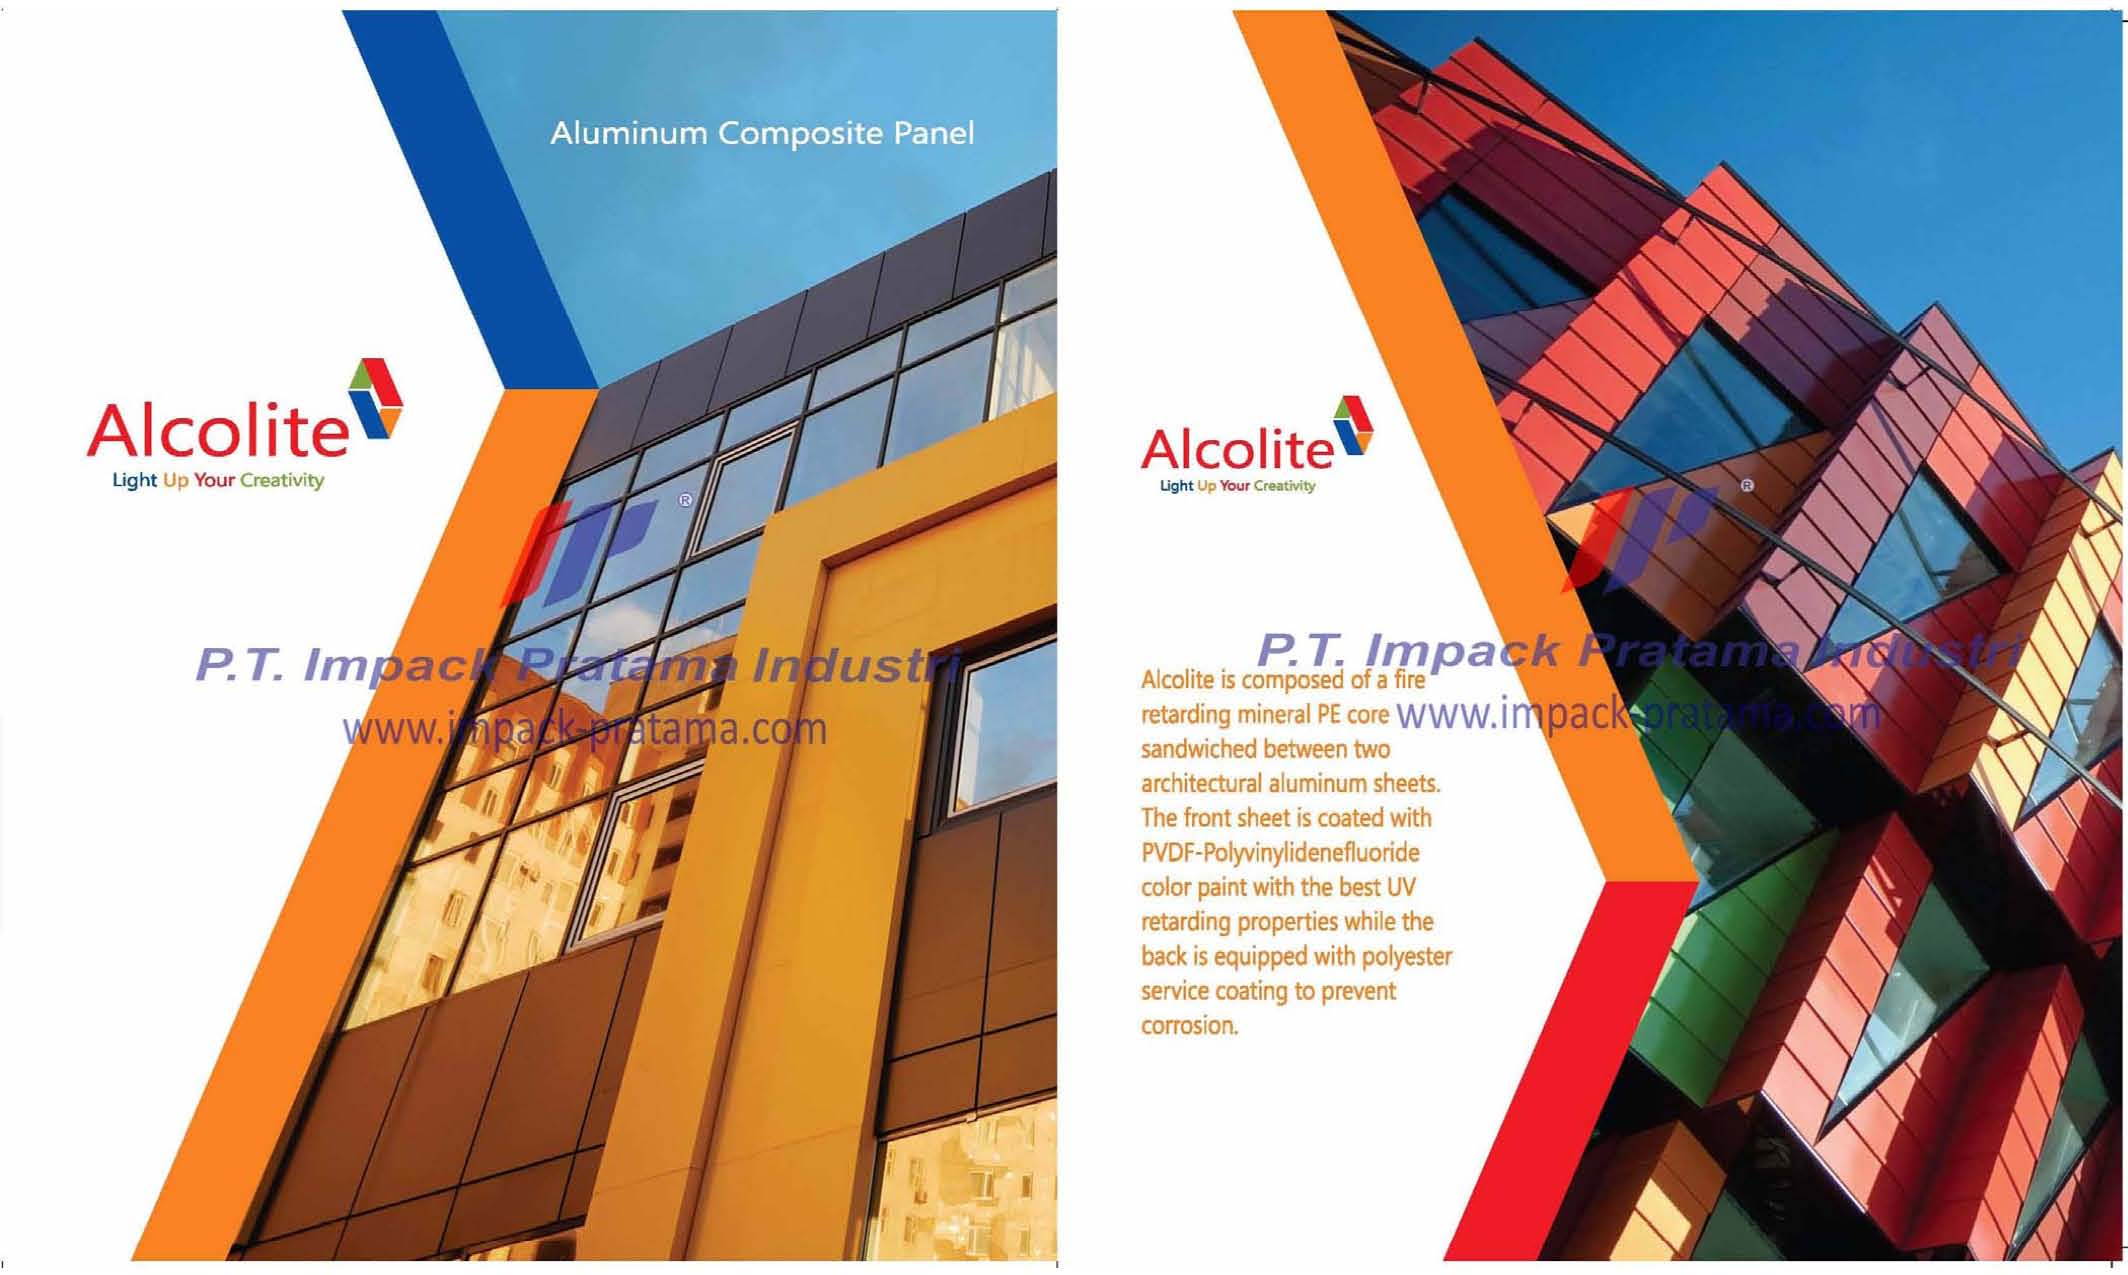 ALCOLITE - HIGH QUALITY ALUMINUM COMPOSITE PANEL